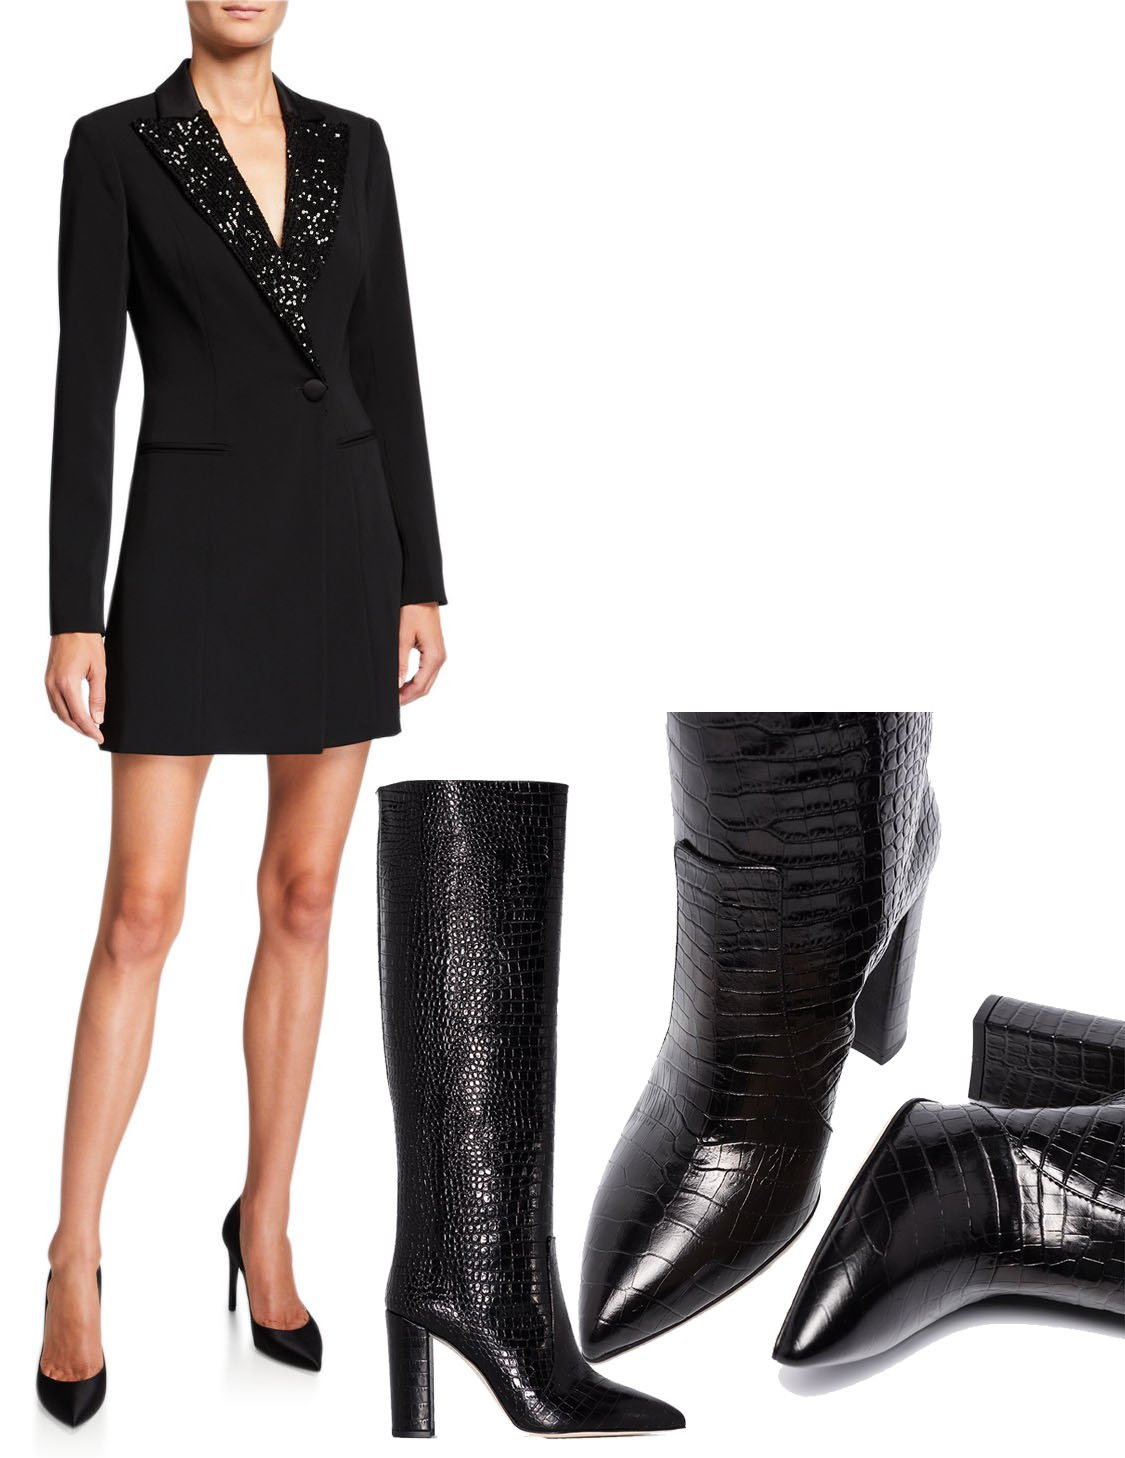 Jay Godfrey Ace Long-Sleeve Sequin-Collar Blazer Dress and Paris Texas 100mm Crocodile-Effect Knee-High Boots